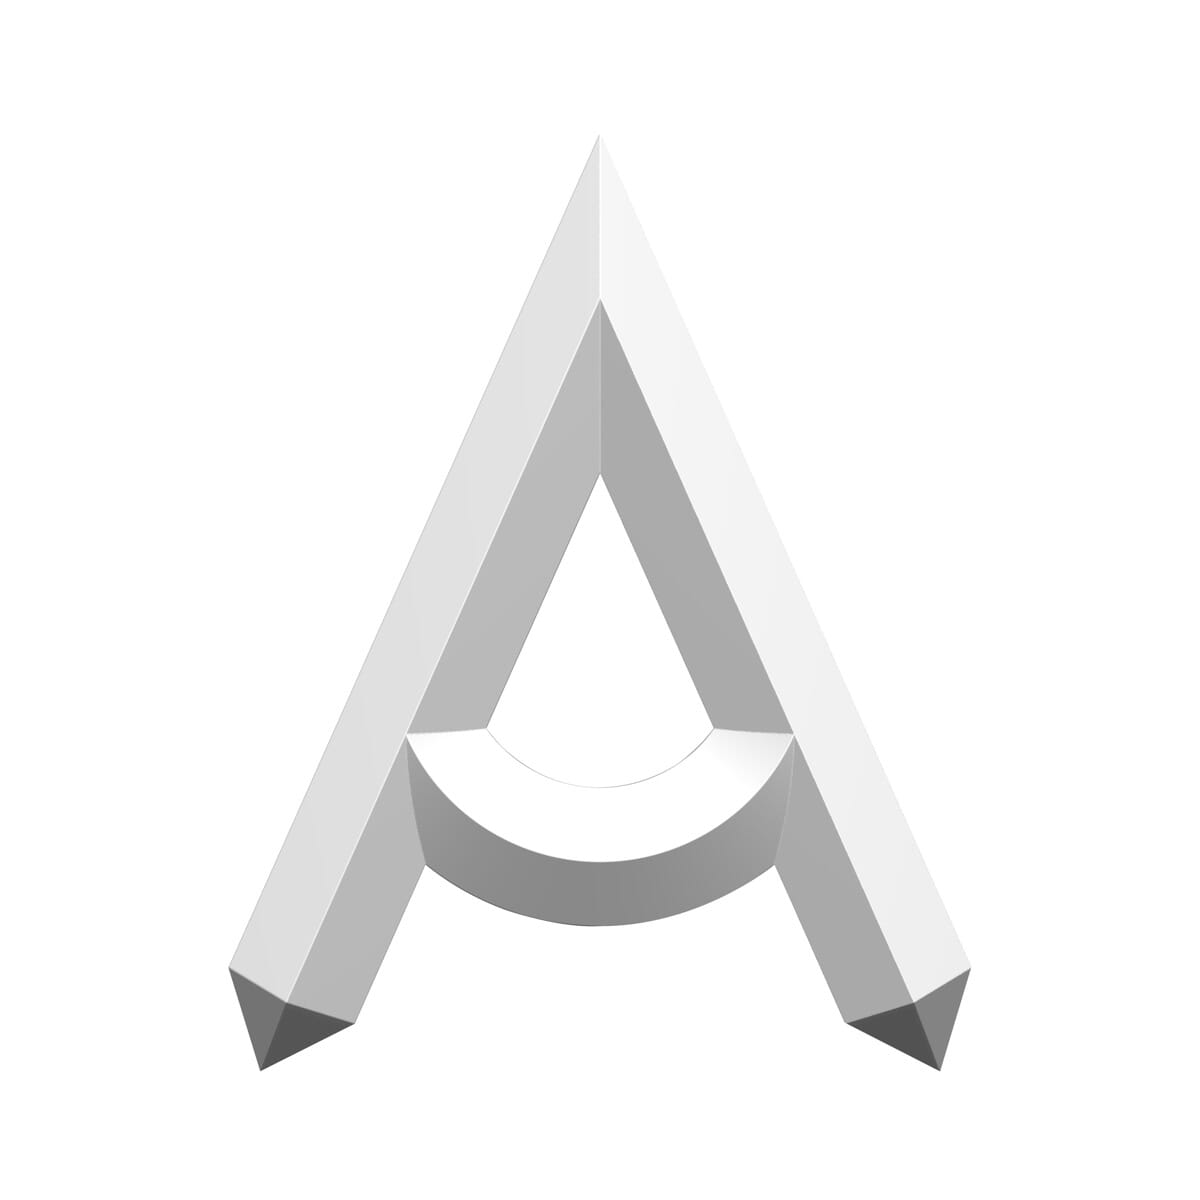 M4 x 25.00mm Hexalobular / Torx Low Cap Head Screws (ISO 14580) - Thread Locking A2 Stainless Steel Drawing